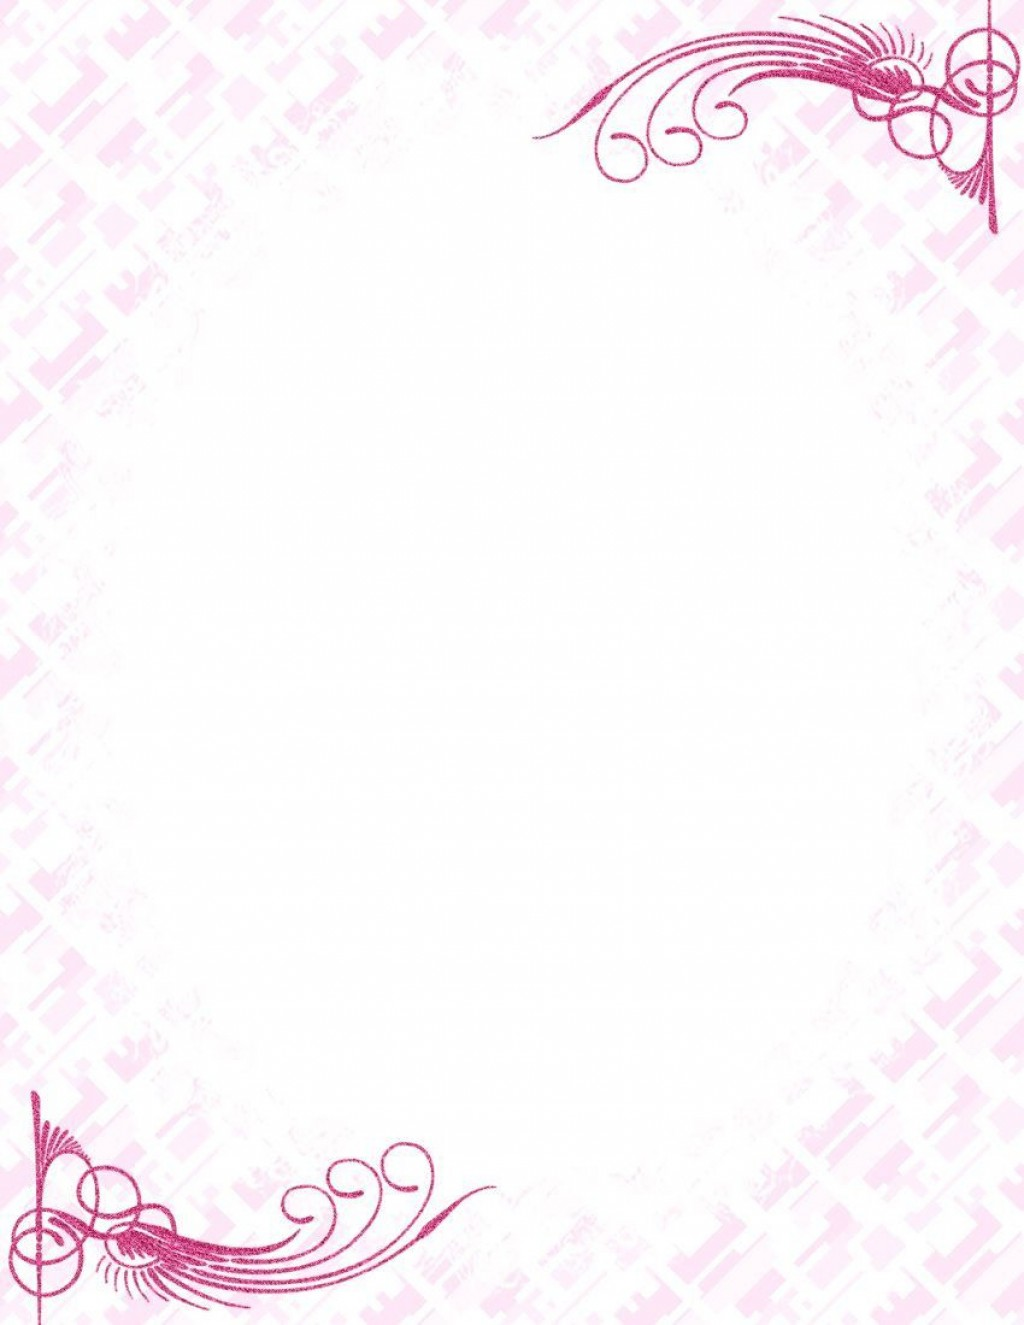 009 Top Free Printable Stationery Paper Template Highest Clarity  TemplatesLarge